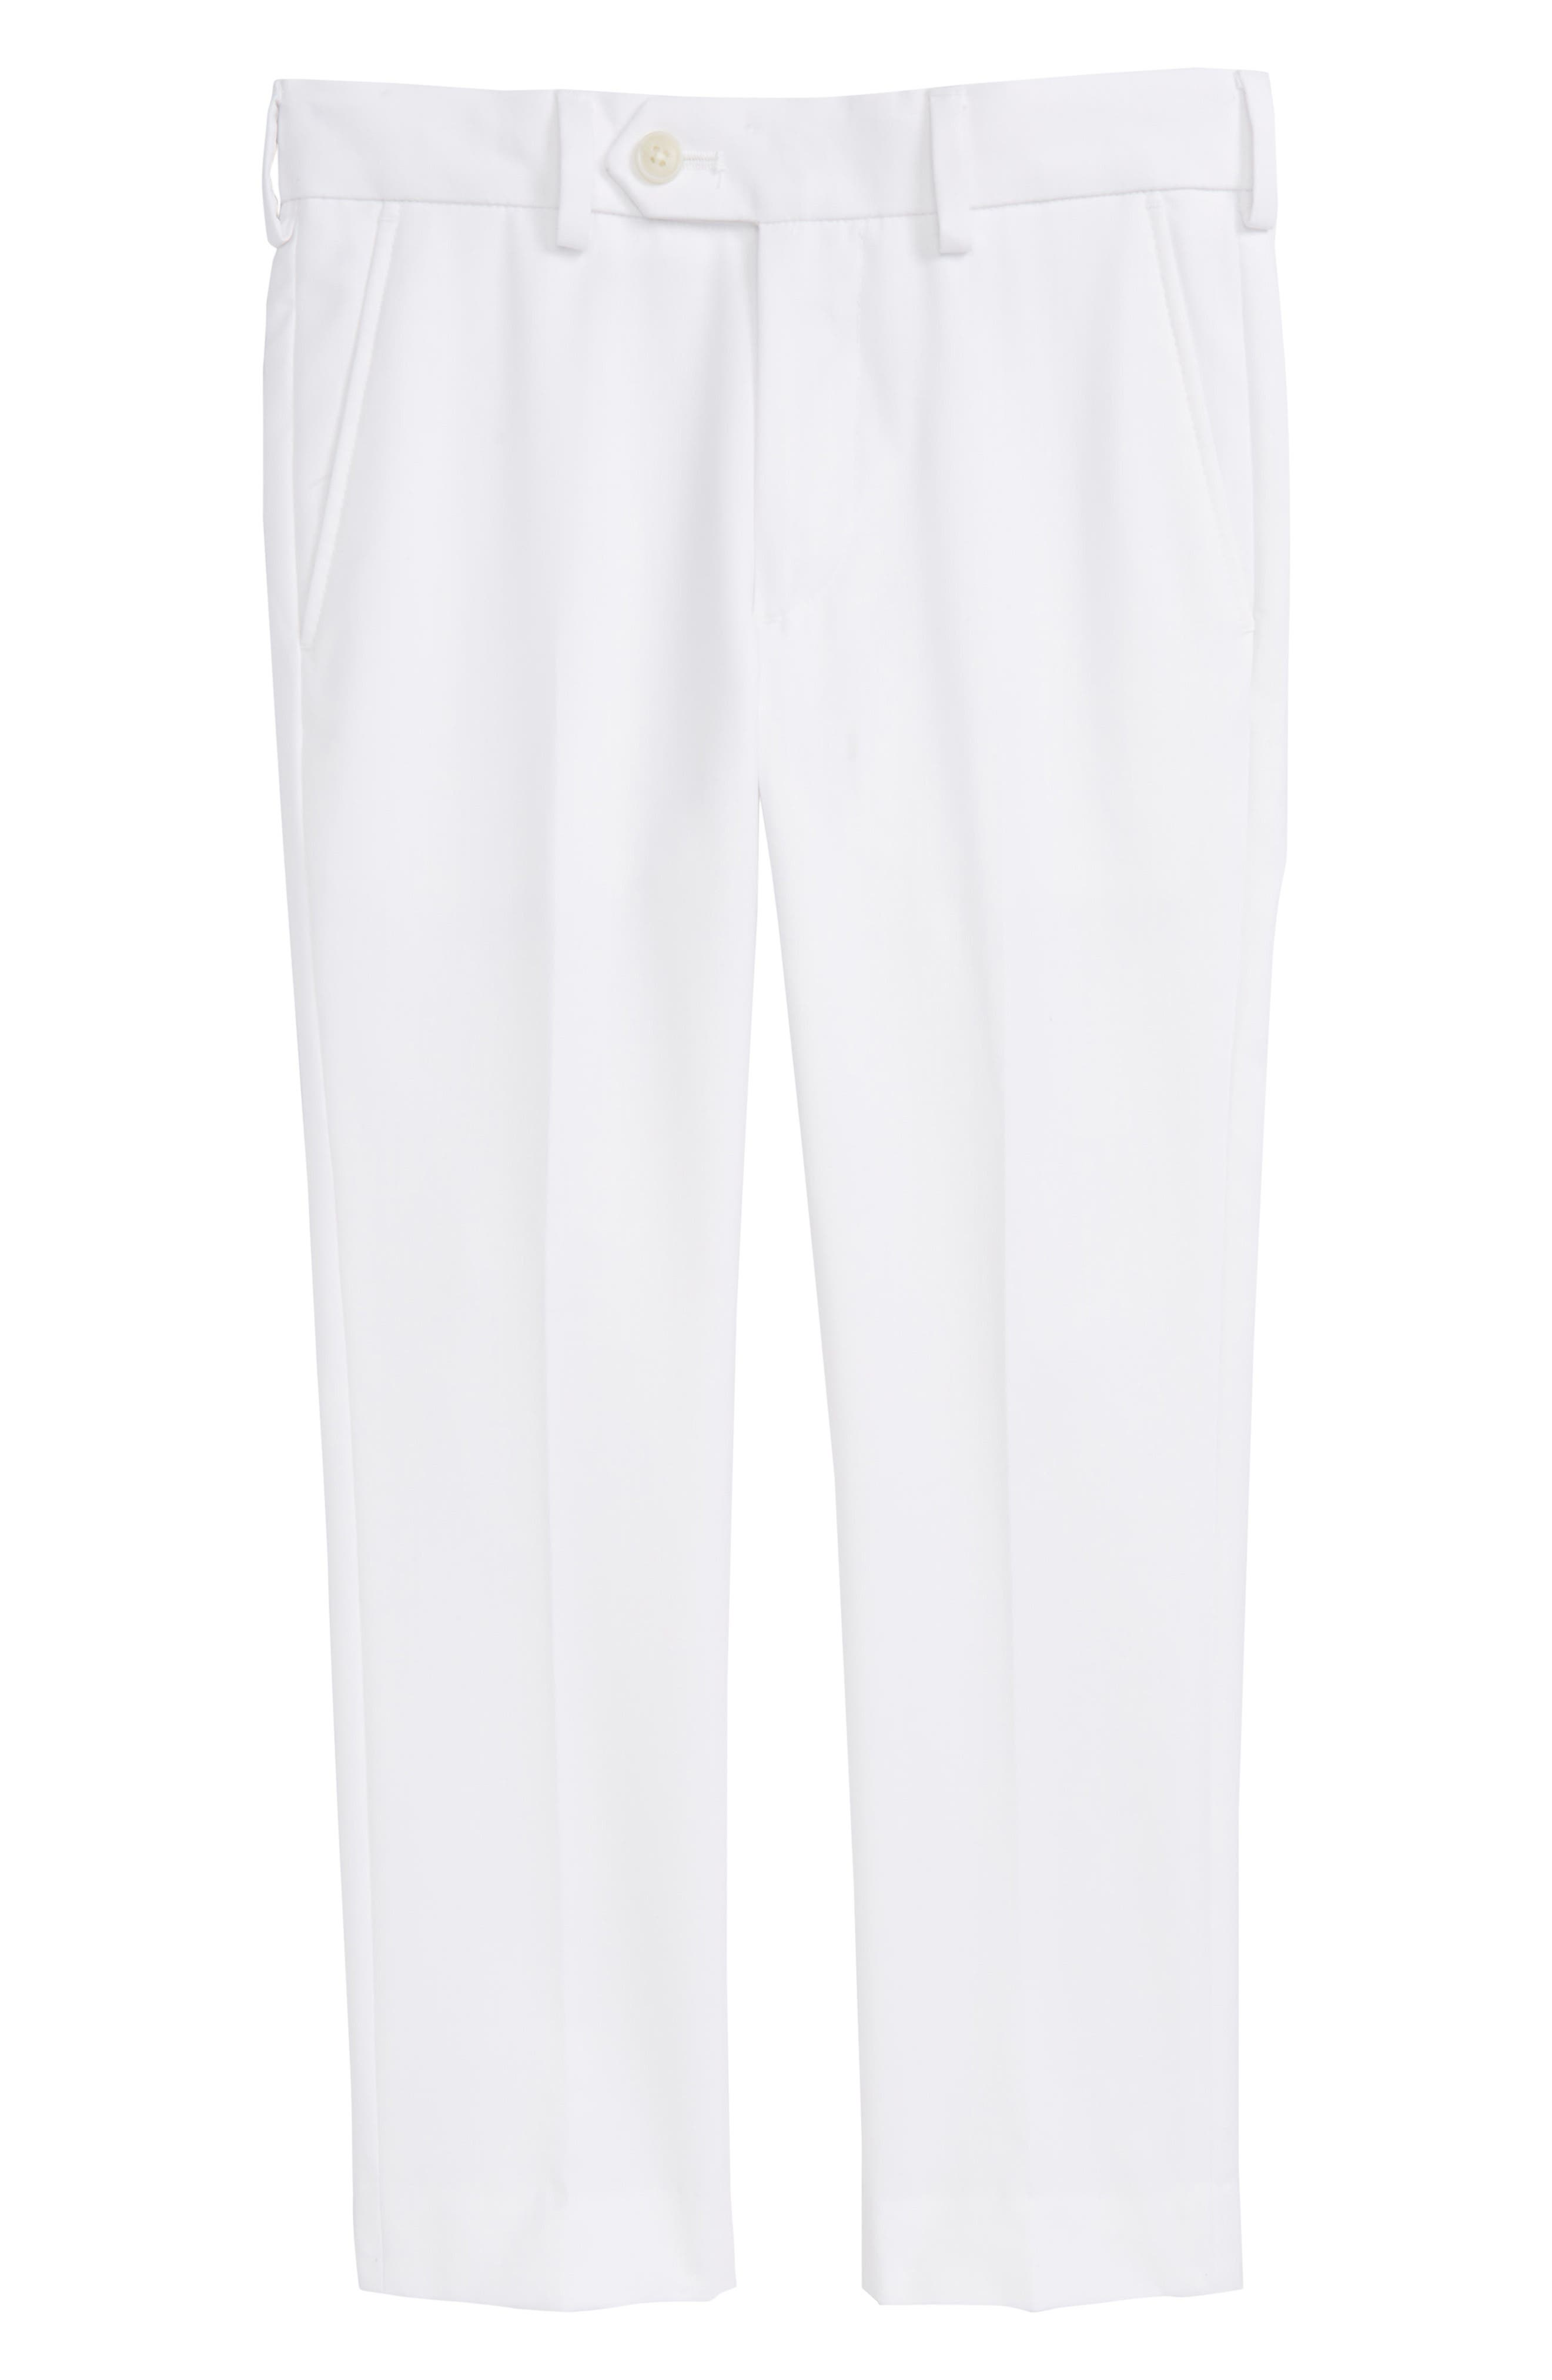 Image of Michael Kors Flat Front Trousers